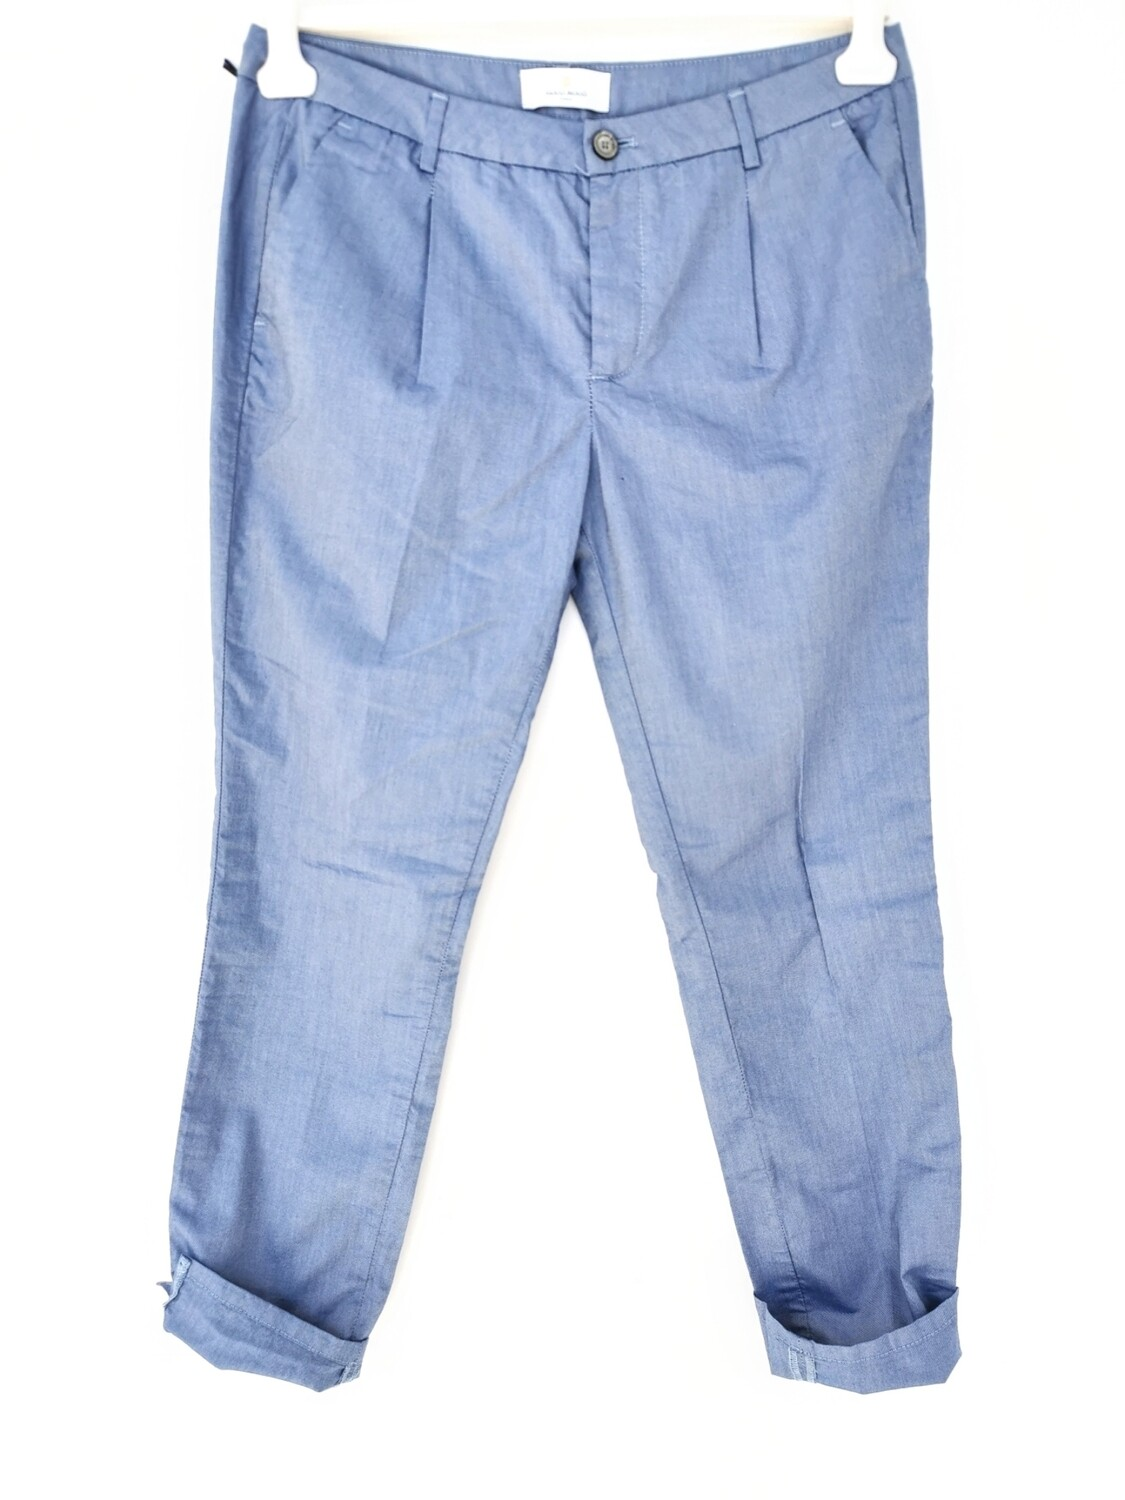 Chino pant in fresh cotton